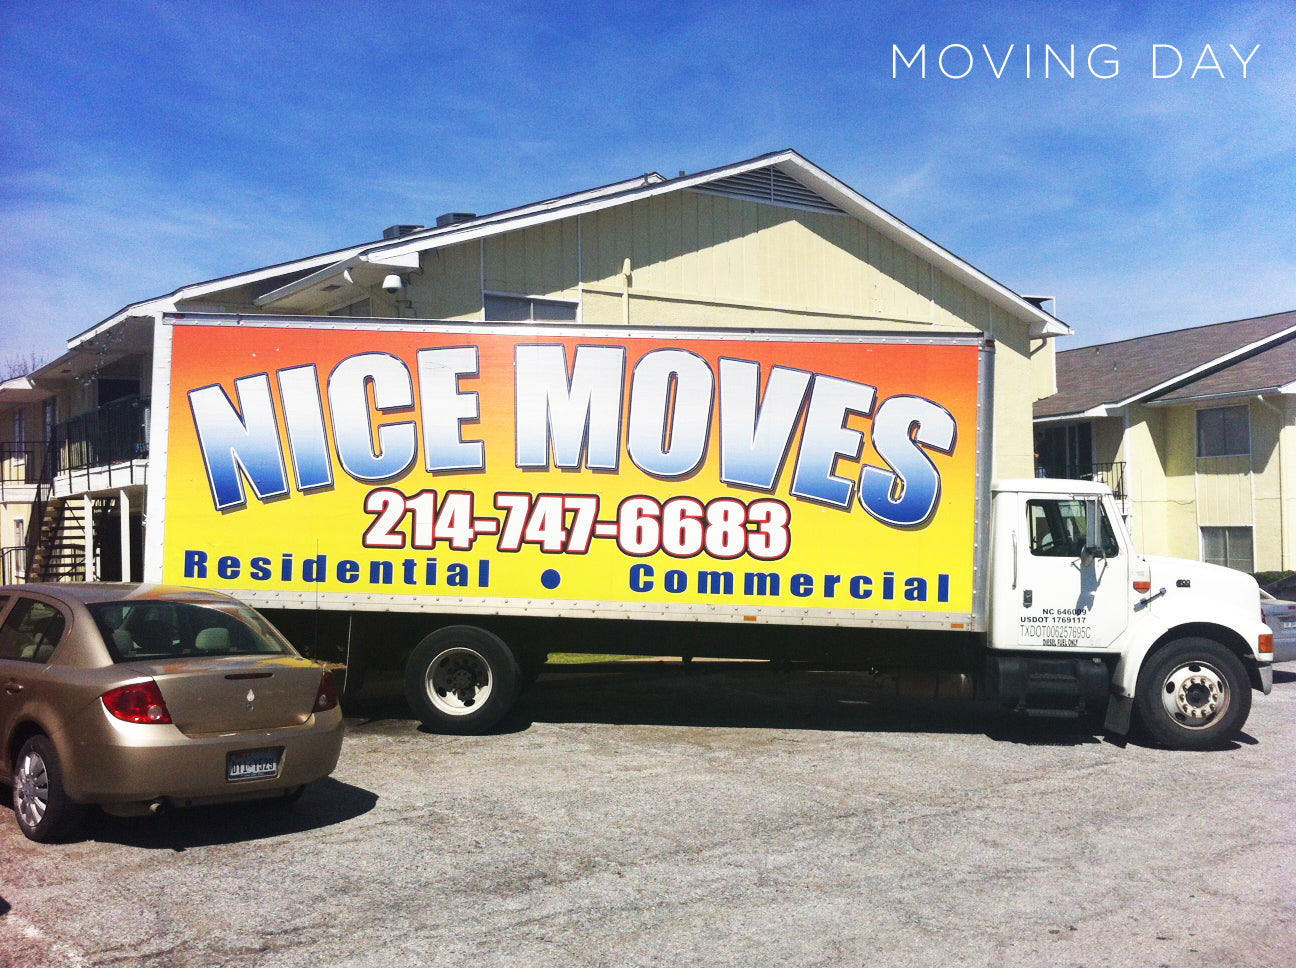 Nice Moves moving truck, ready to deliver a beautiful home for Dwell with Dignity